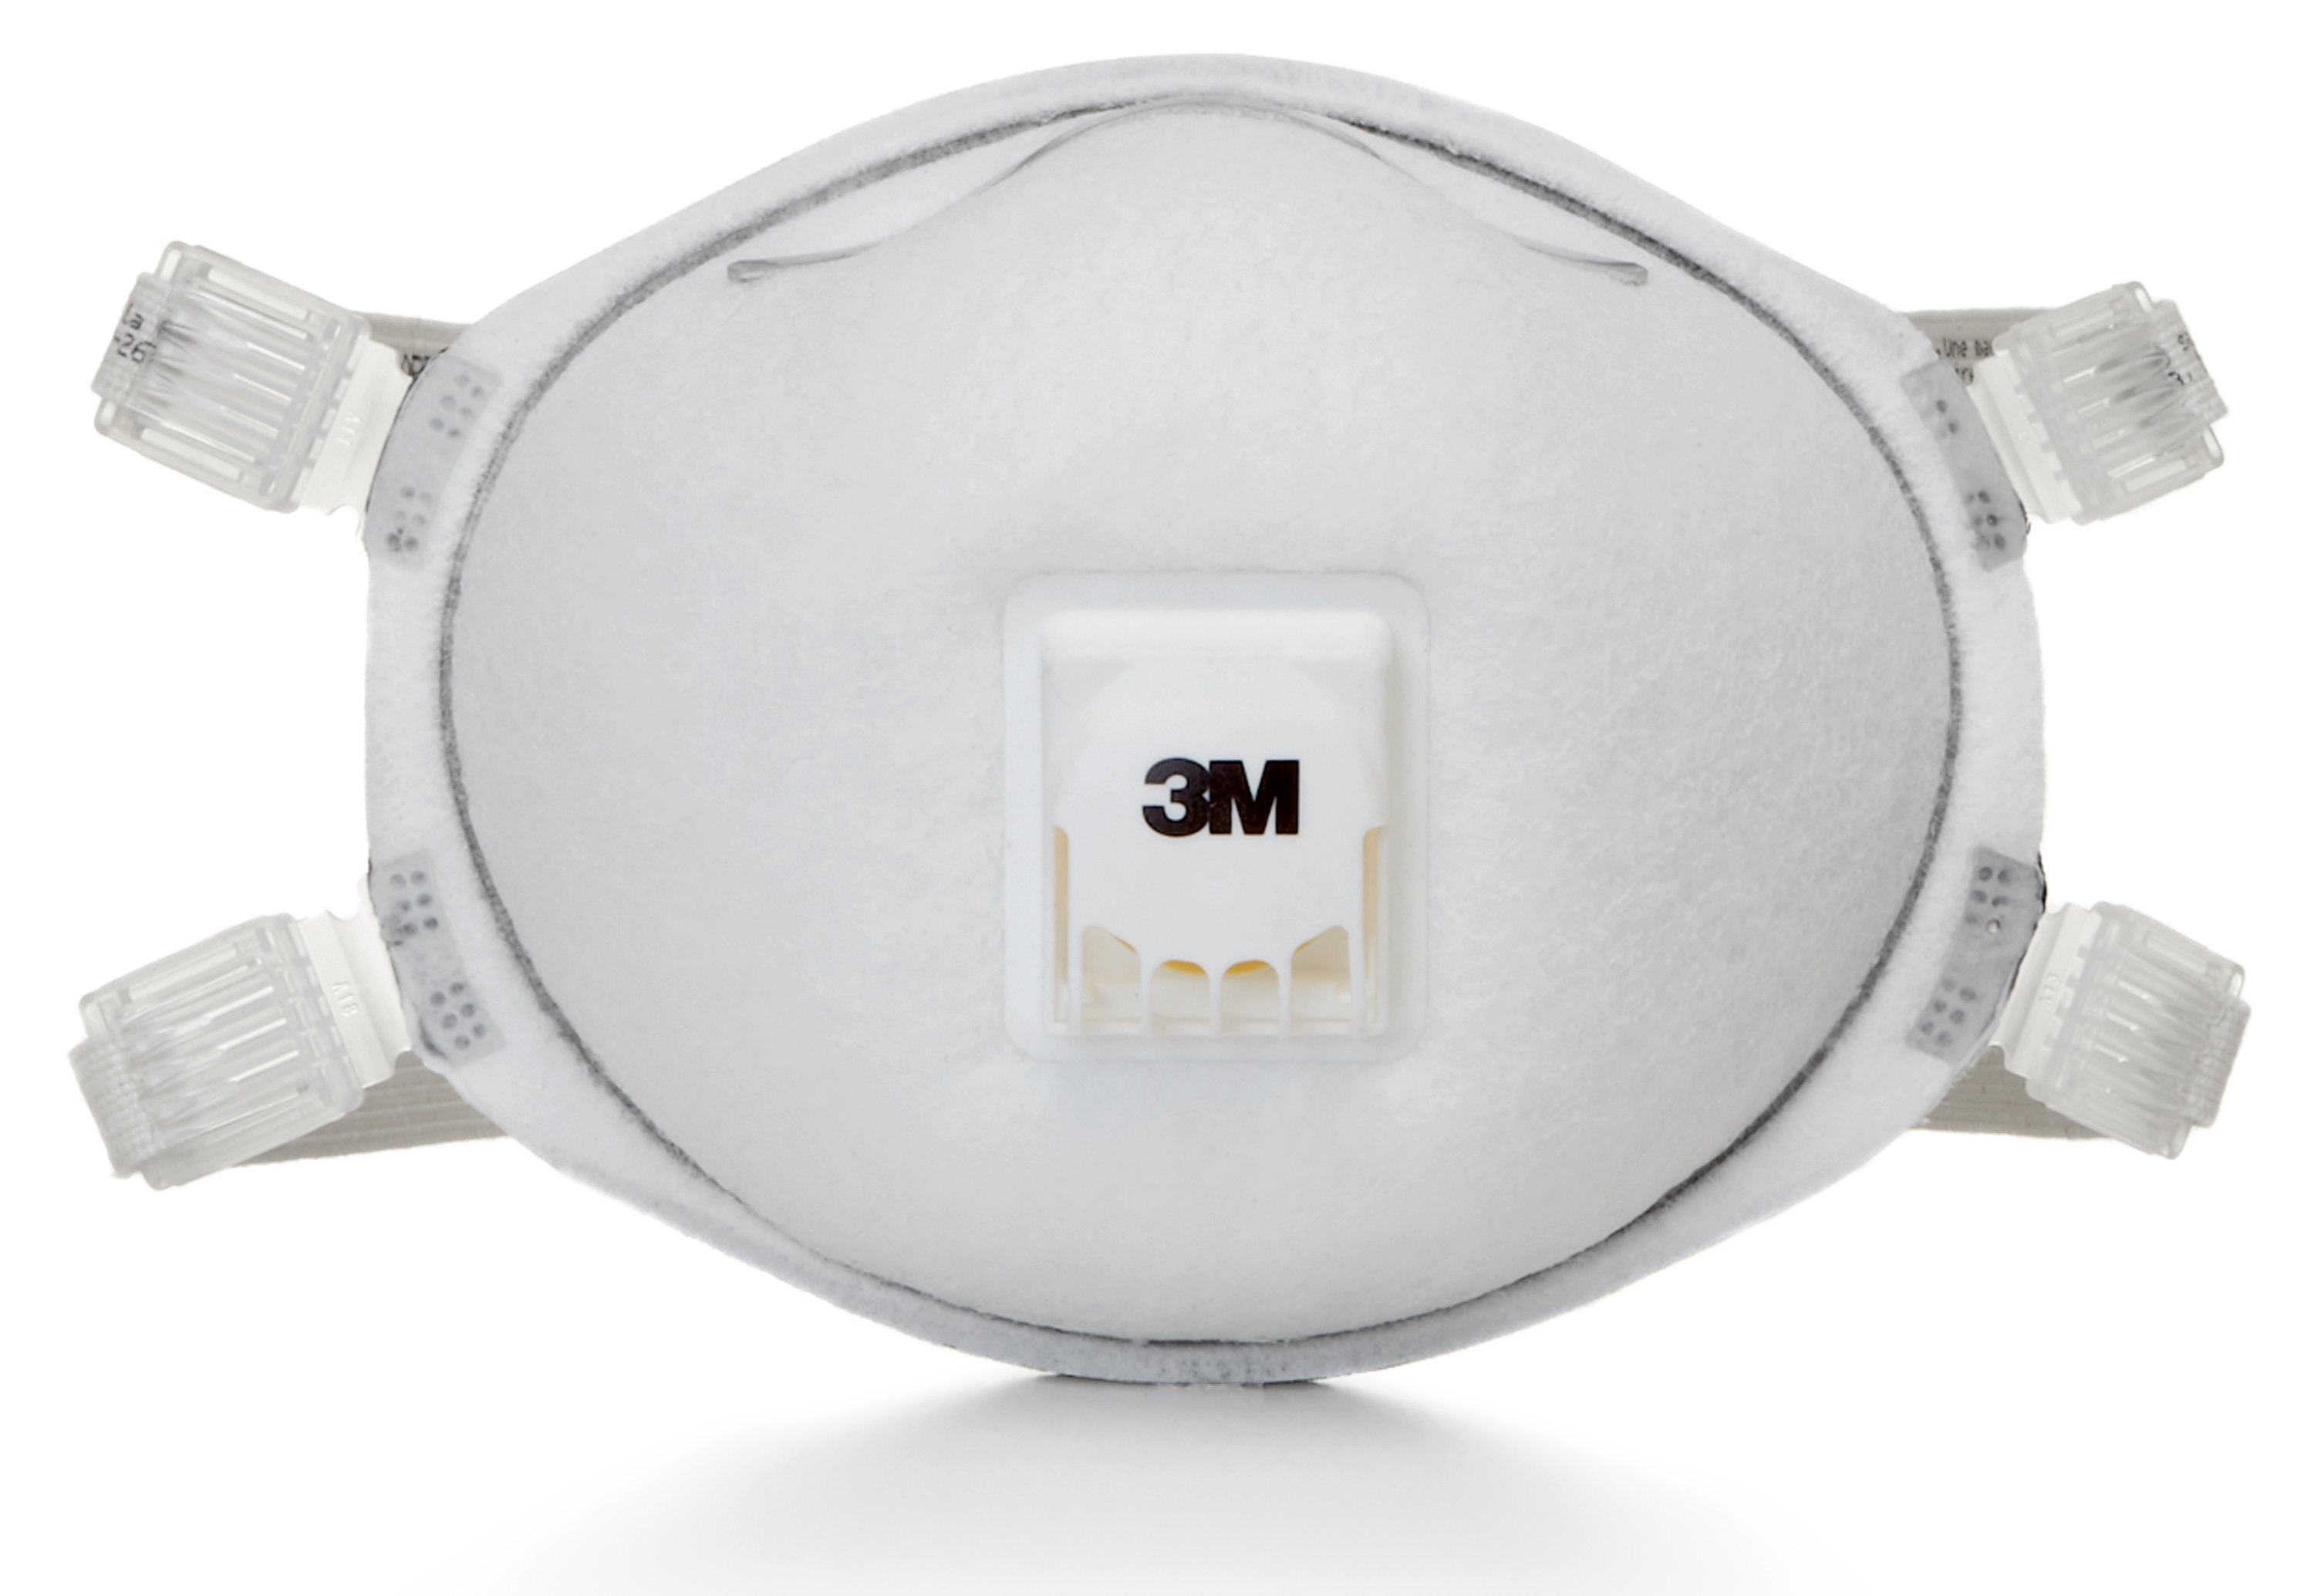 3M™ 8210 Disposable Respirator - STOCK RESTRICTED - Due to high demand for N95 and other models of disposable respirators, we may be unable to fulfill any orders for these products regardless of stock status indicated on our website.